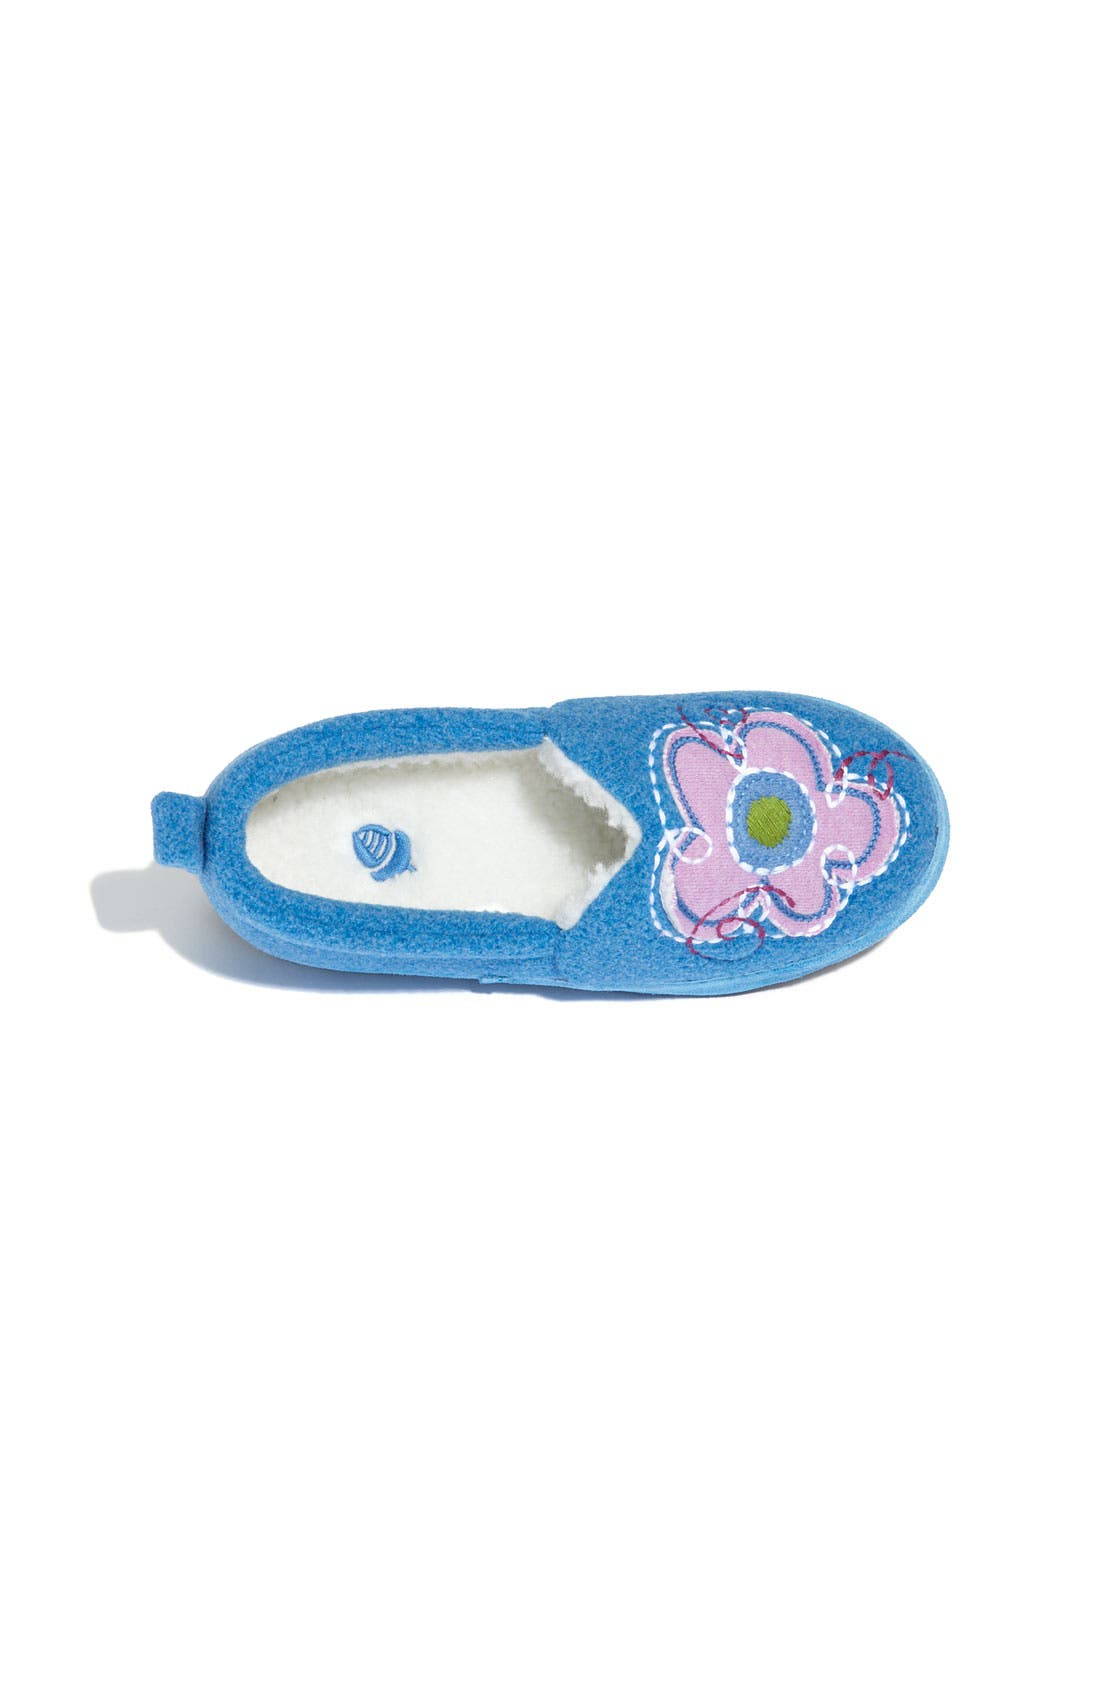 Alternate Image 3  - Acorn 'Flower Power Moc' Slipper (Toddler, Little Kid & Big Kid)